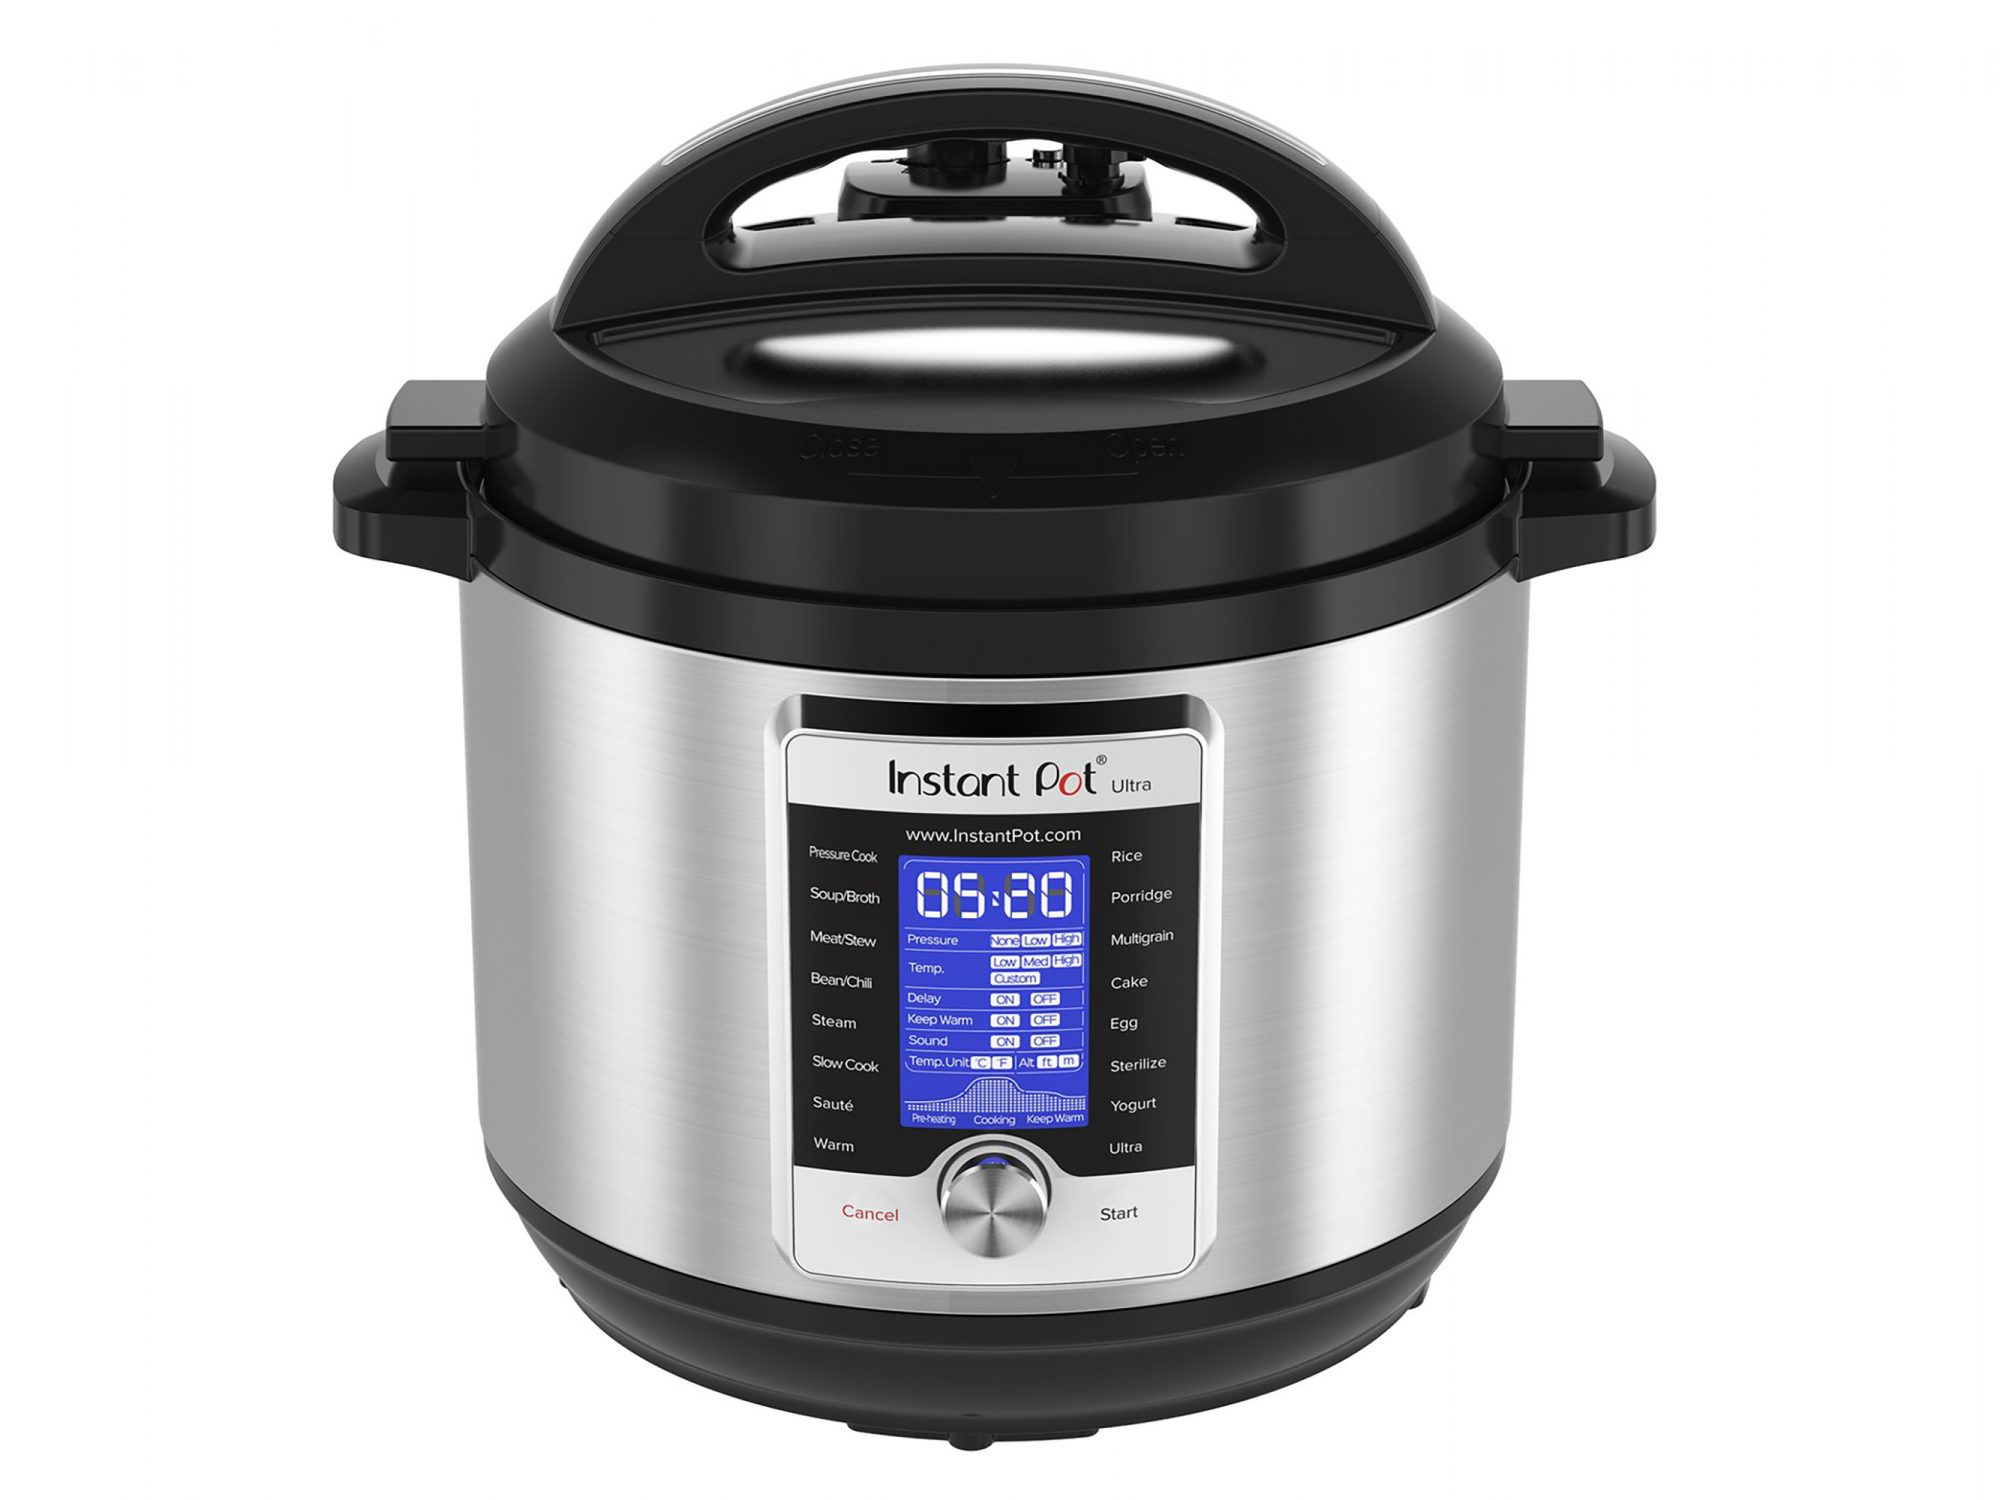 A Brand New Instant Pot Is Coming out With Some Great Upgrades